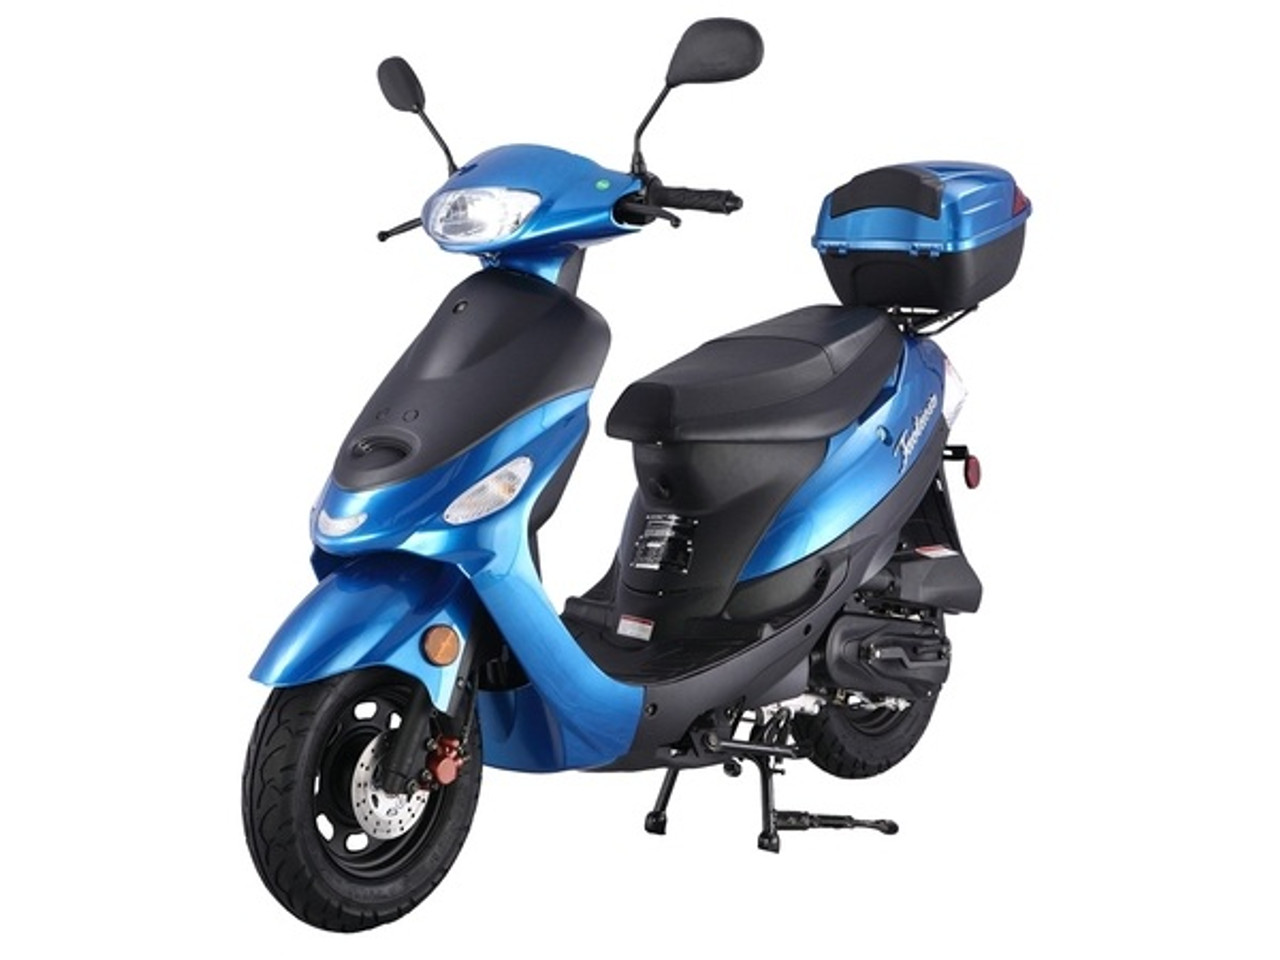 Taotao ATM 50-A1 Gas Street Legal Scooter, Electric with keys, kick start back up Scooter